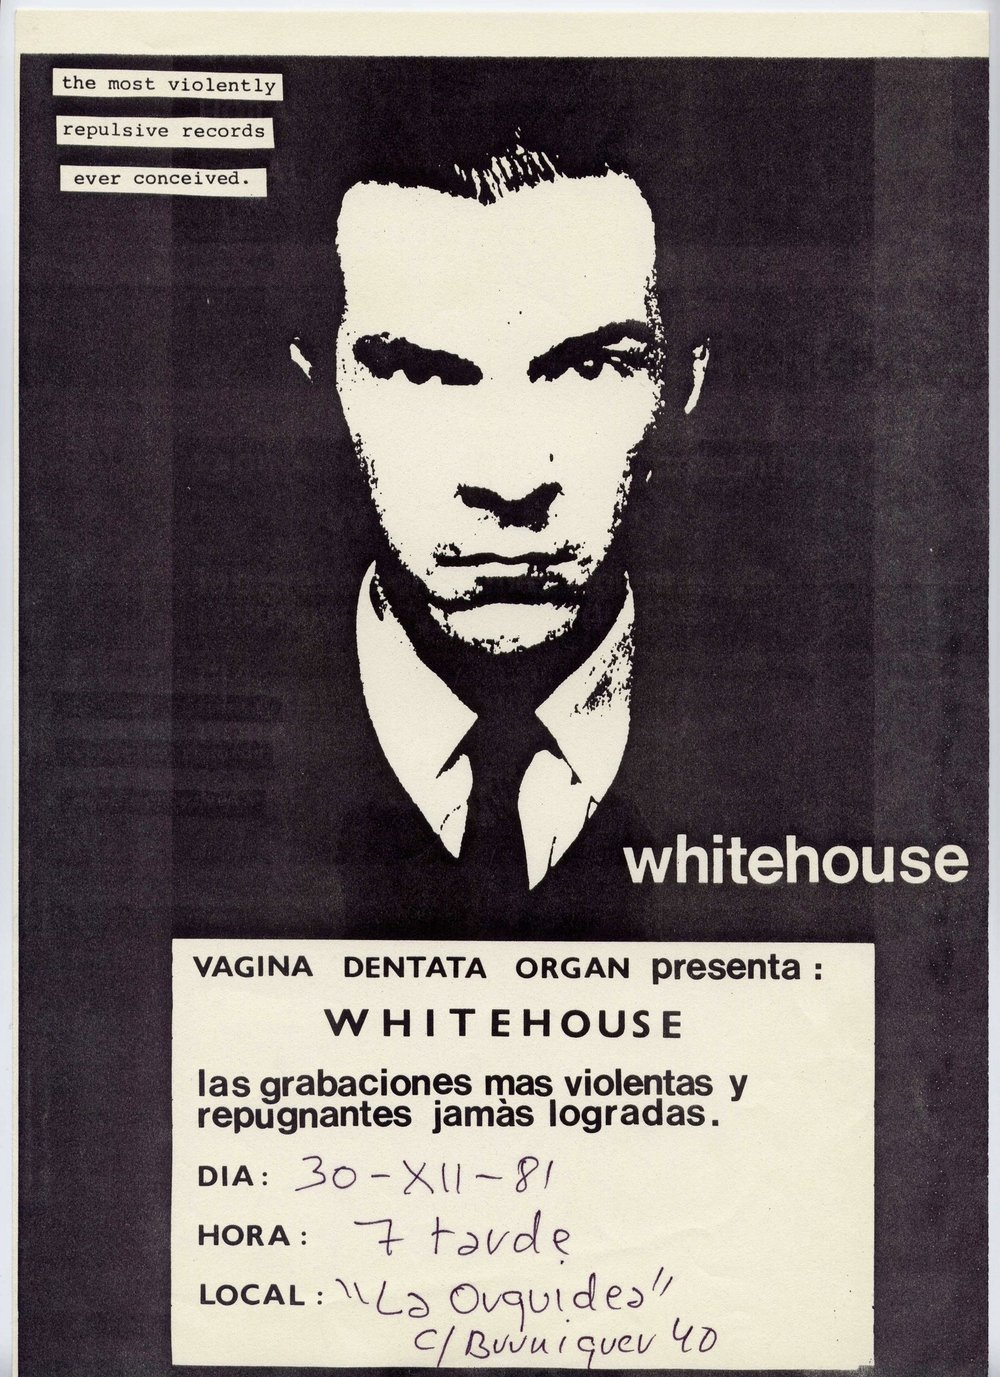 Flyer La Orquídea, Whitehouse, 1981